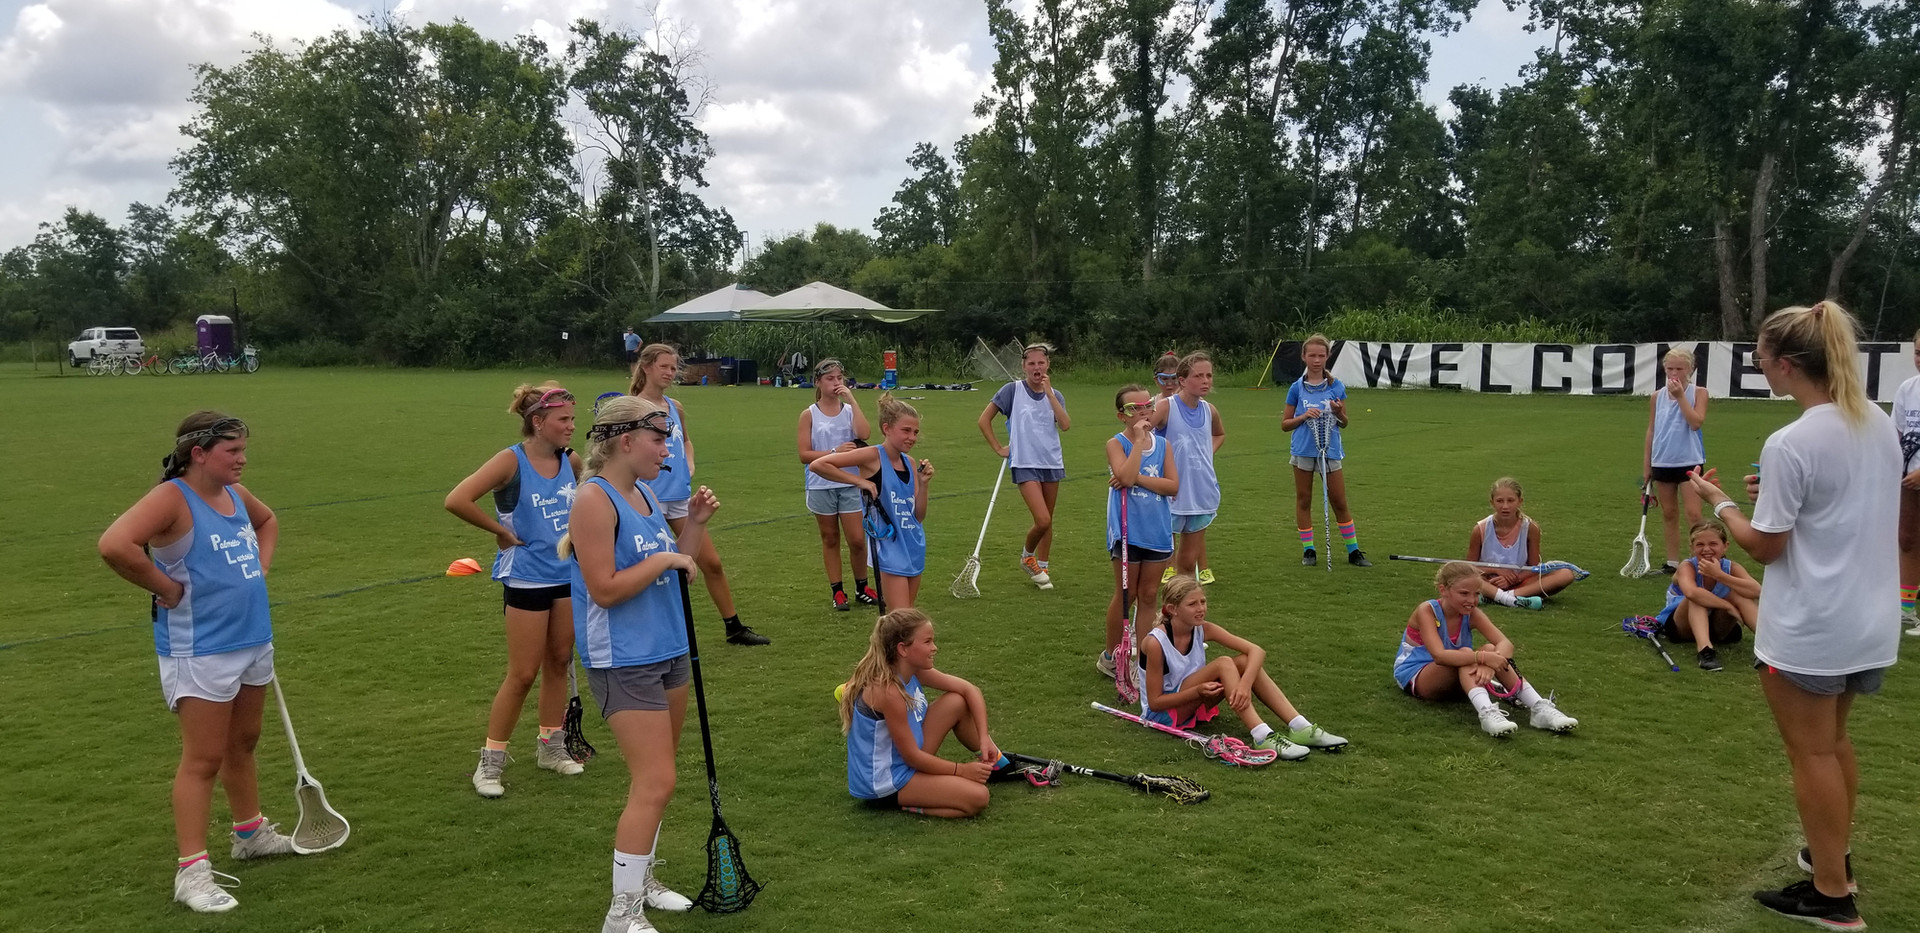 charleston-lacrosse-summer-camp